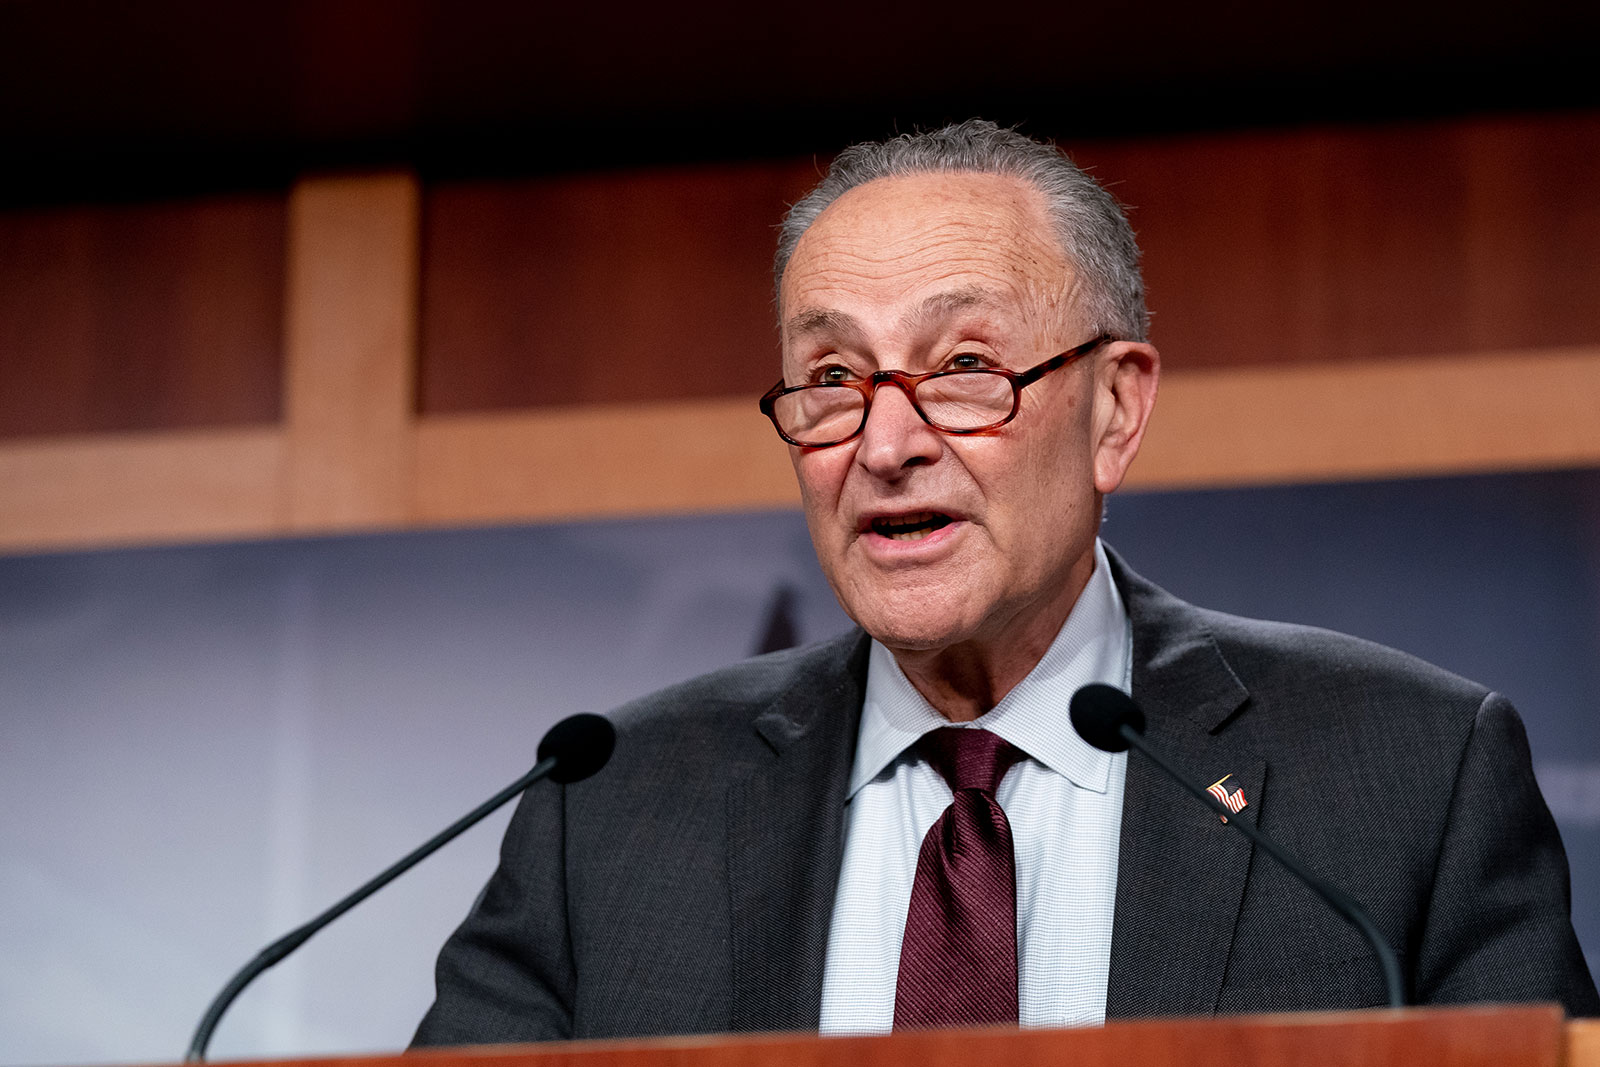 Senate Majority Leader Chuck Schumer speaks during a news conference on Tuesday.